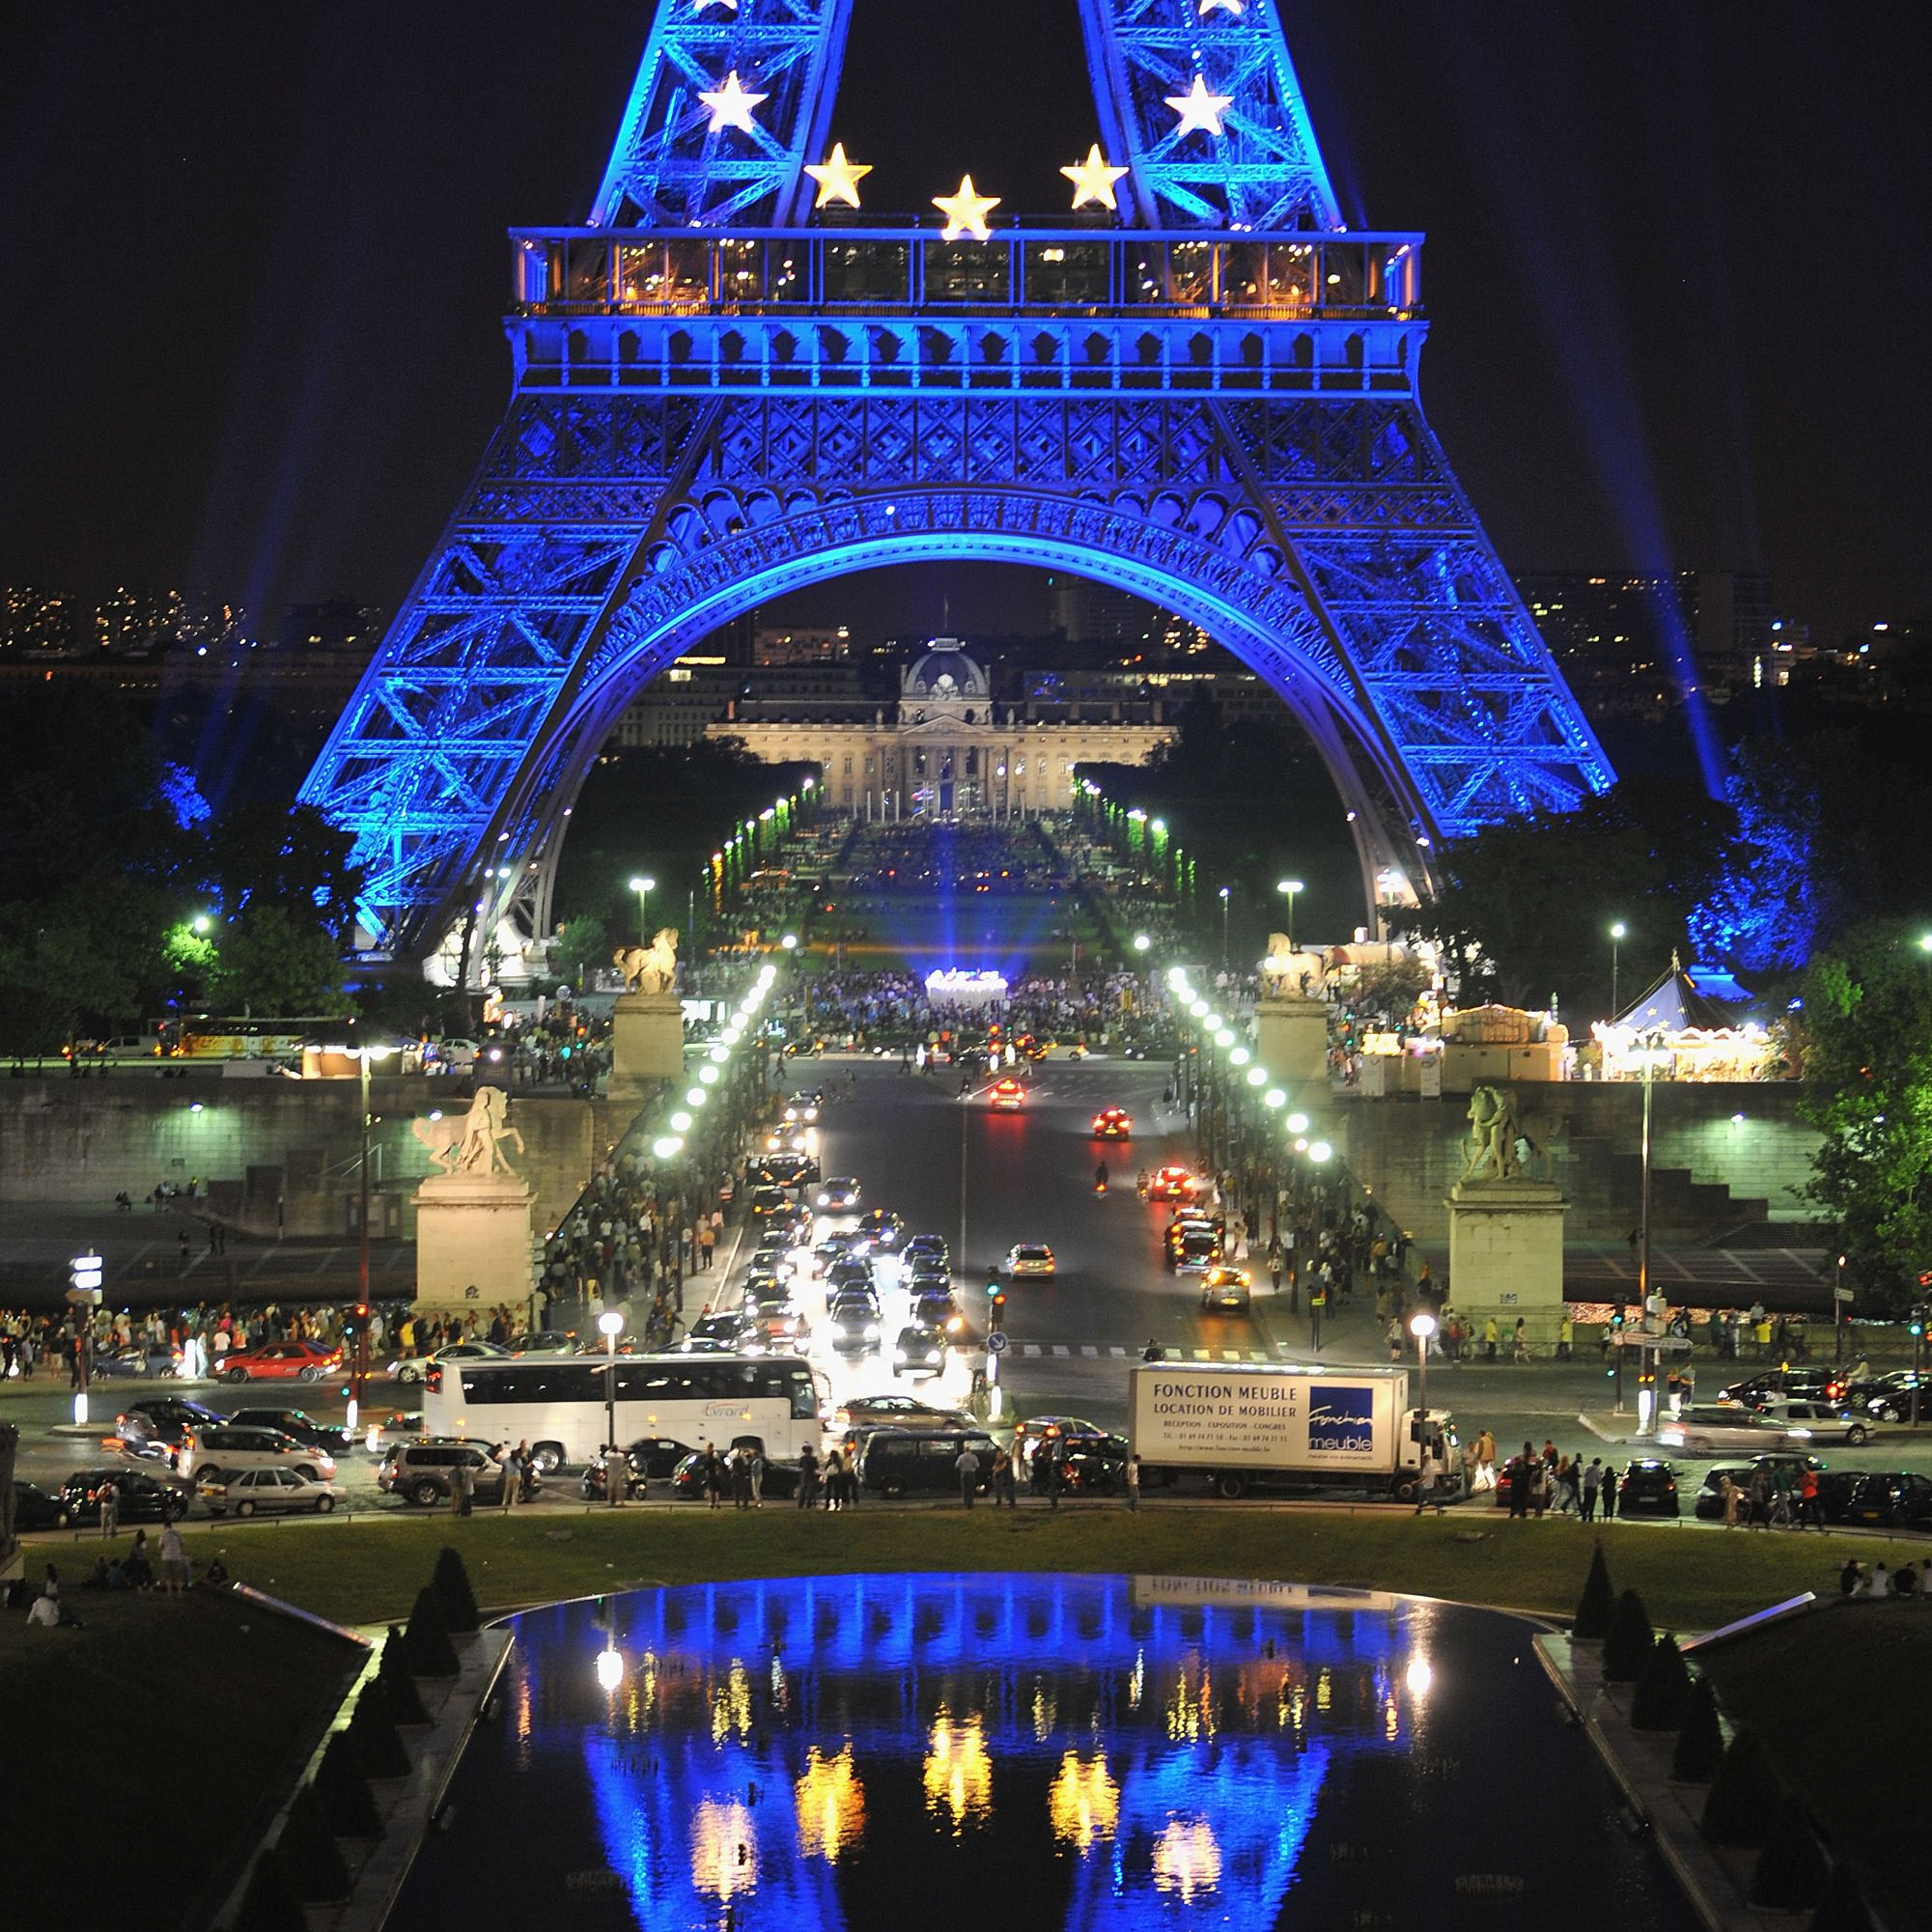 The Eiffel Tower lit with EU colors and insignia in 2008